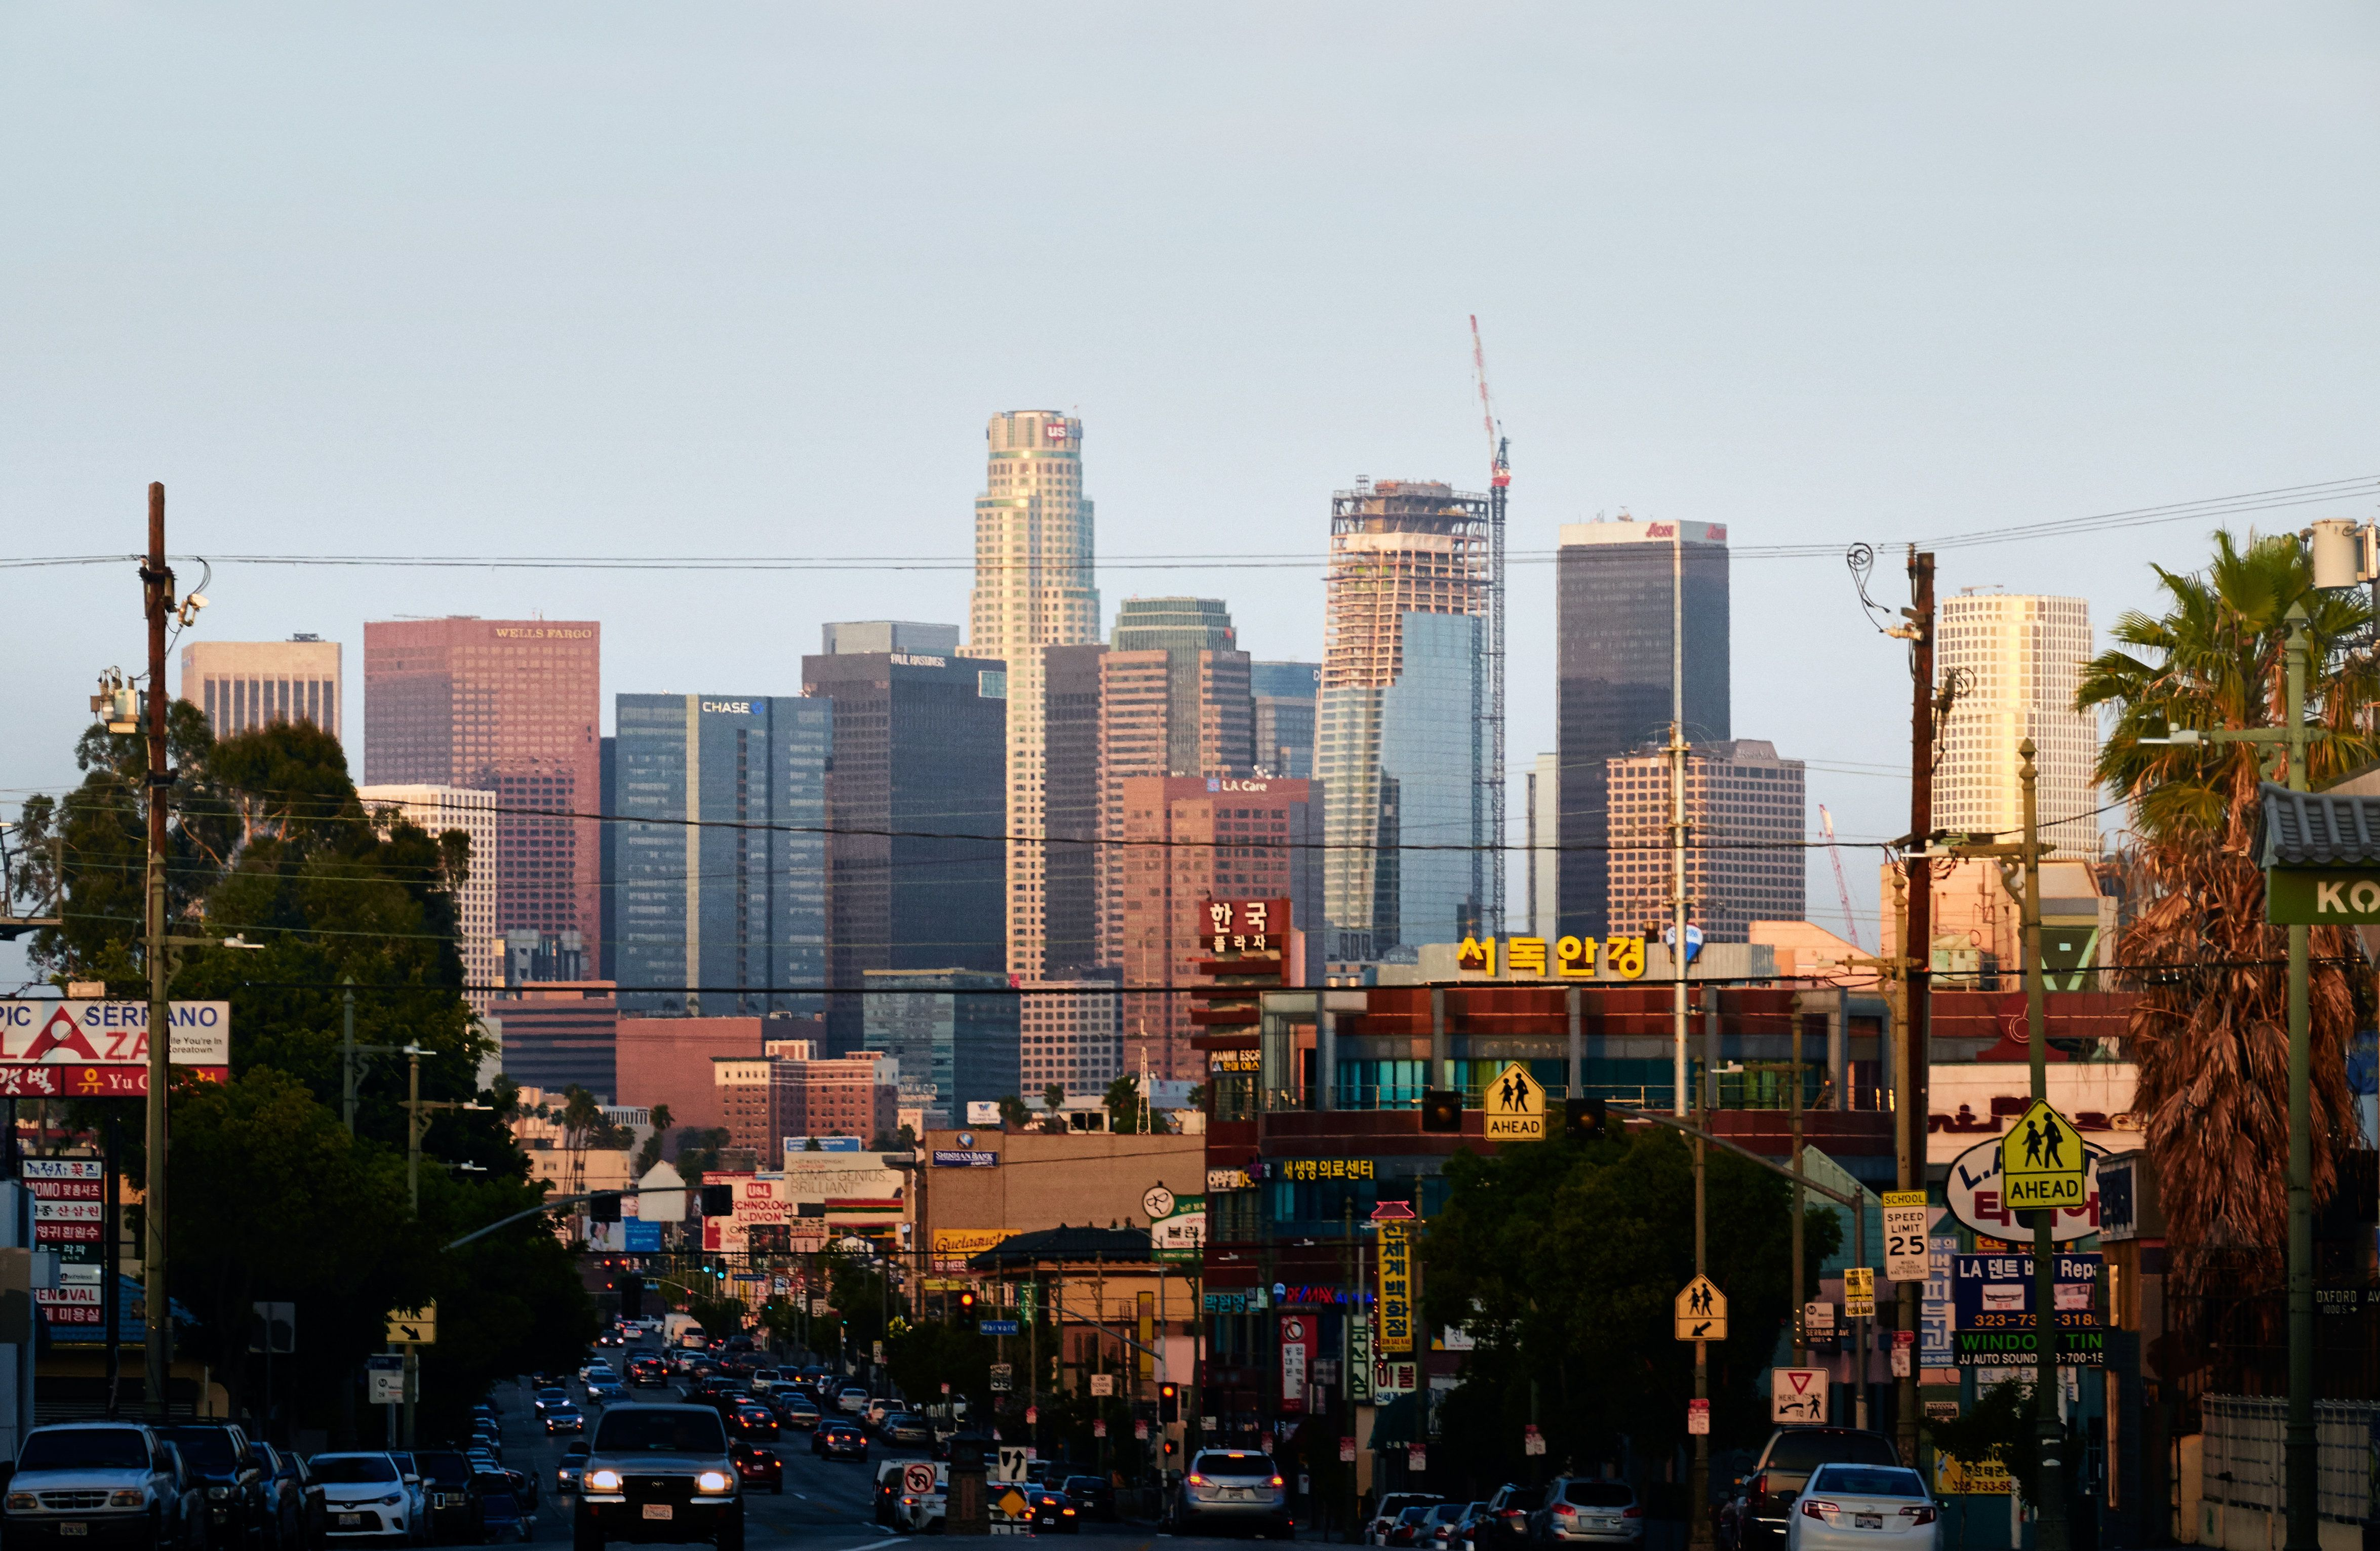 As the sun rises across downtown Los Angeles, commuters on a section of Olympic Blvd in Koreatown are cast in shadow